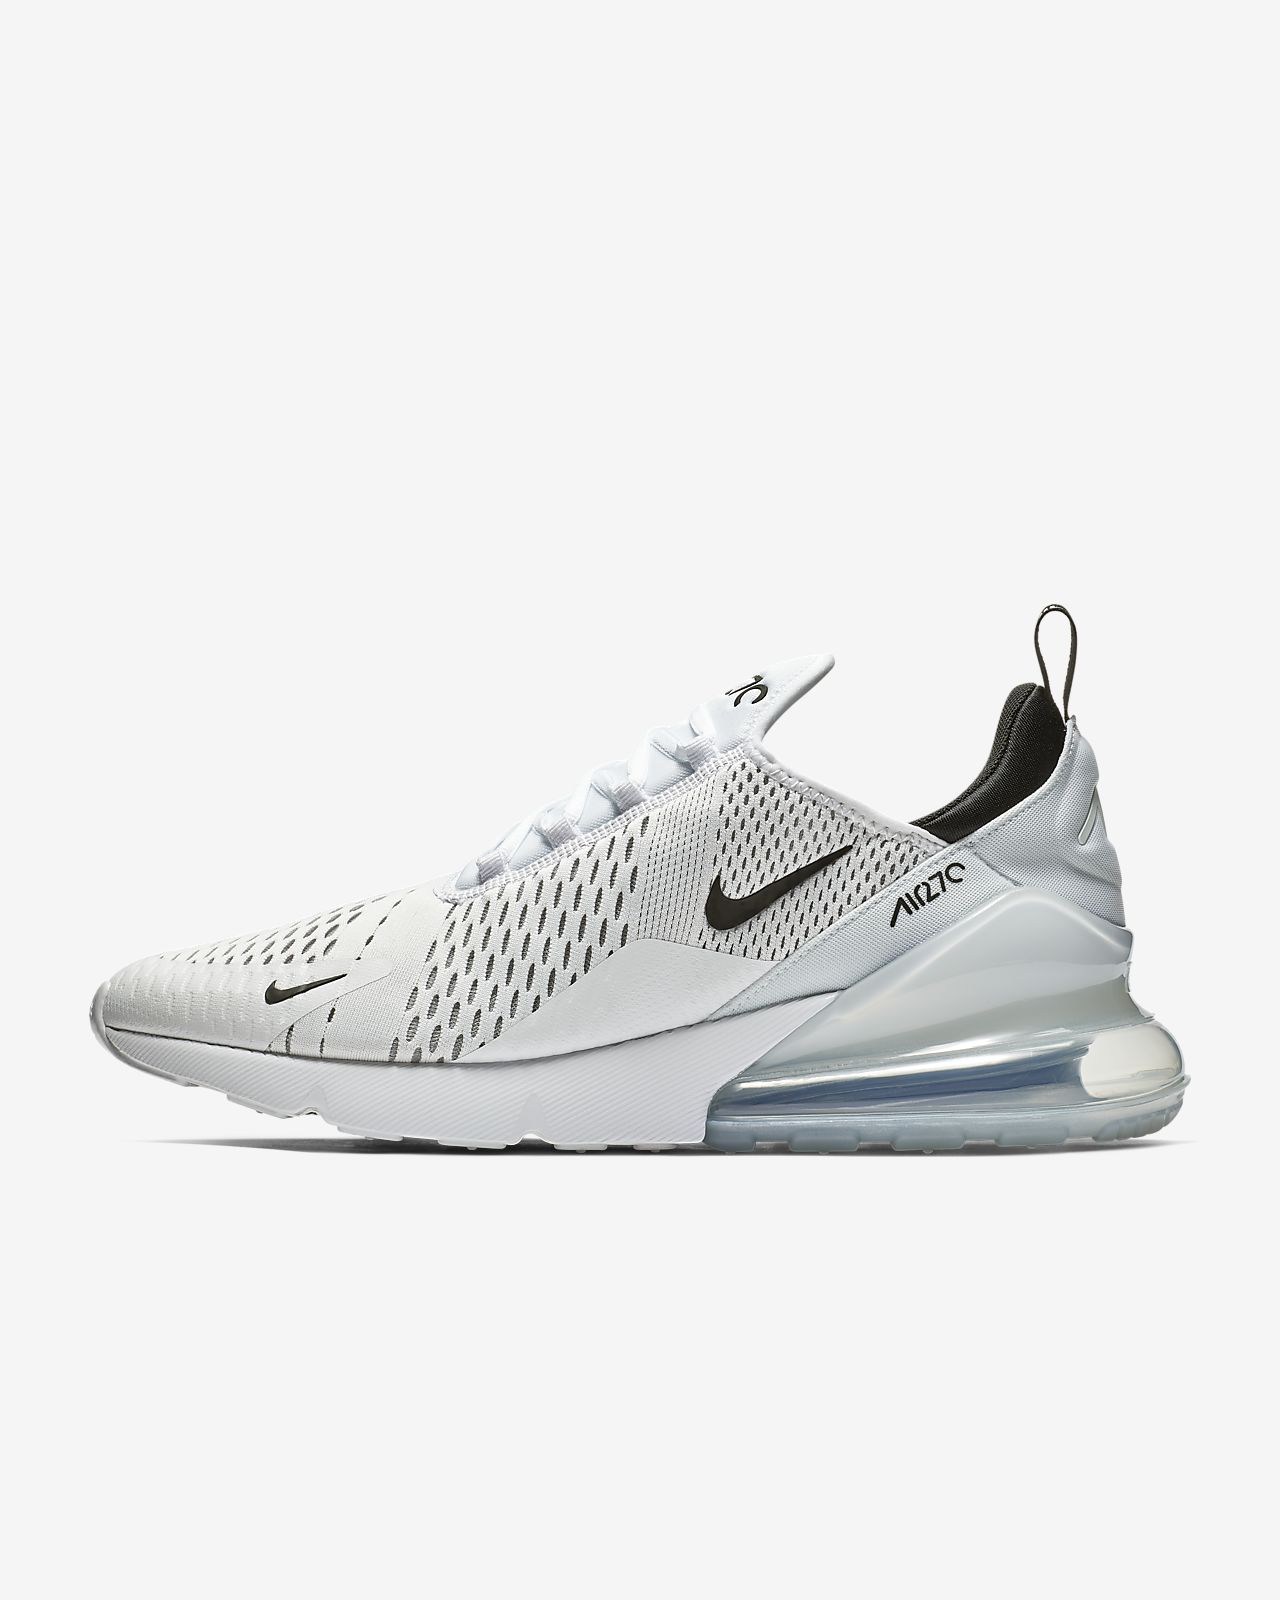 Nike air max 270 , Mens Uk Size 6 11, AH8050 002, Brand